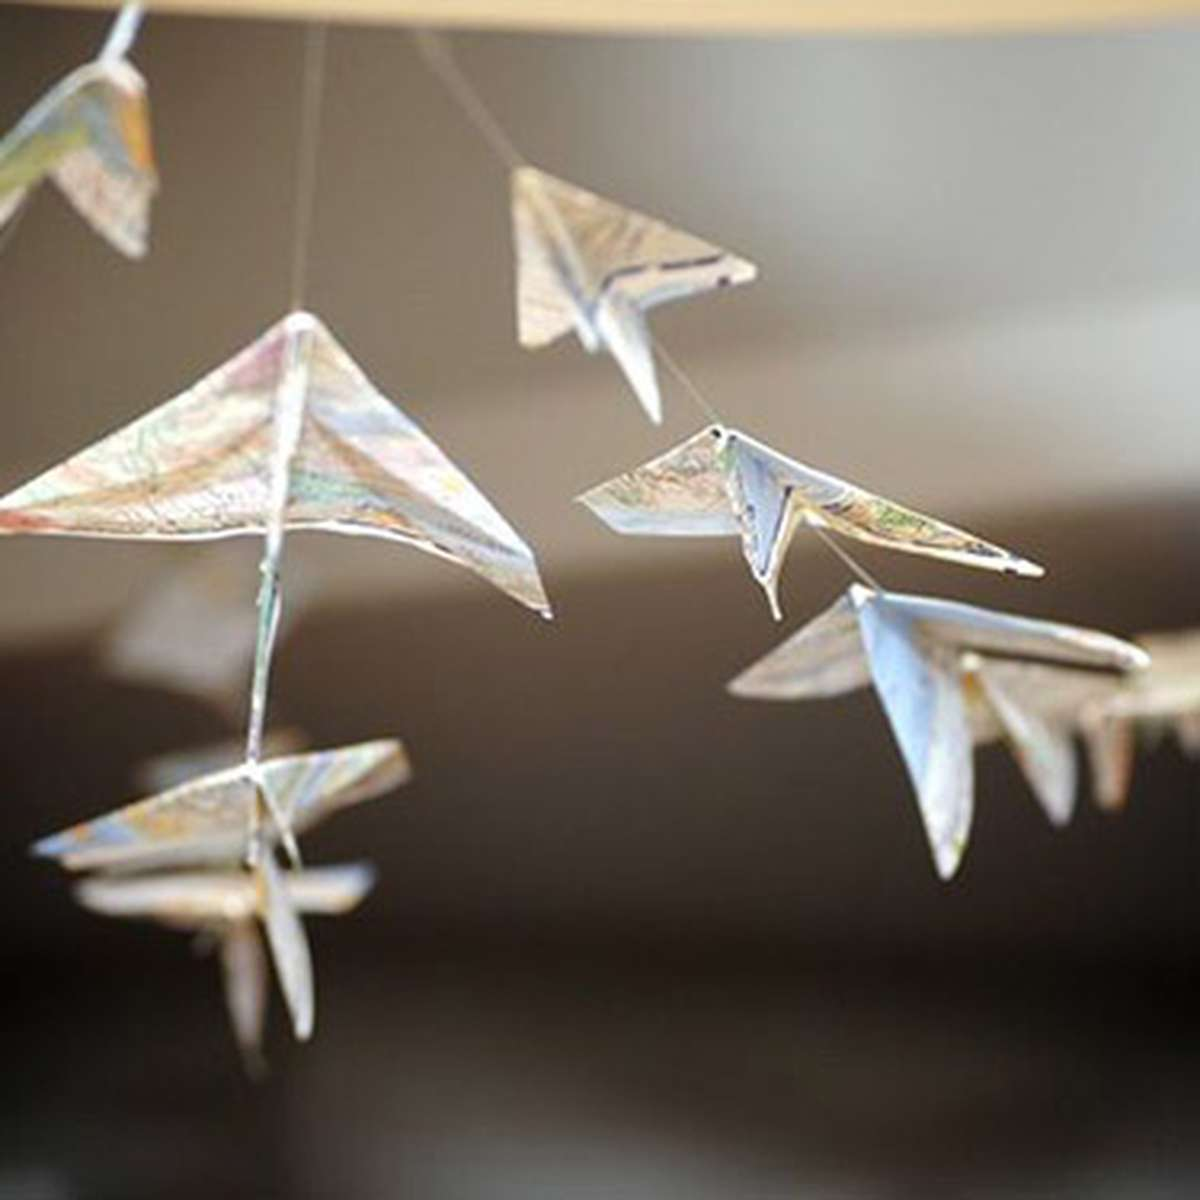 Paper Airplane Garland made with Maps